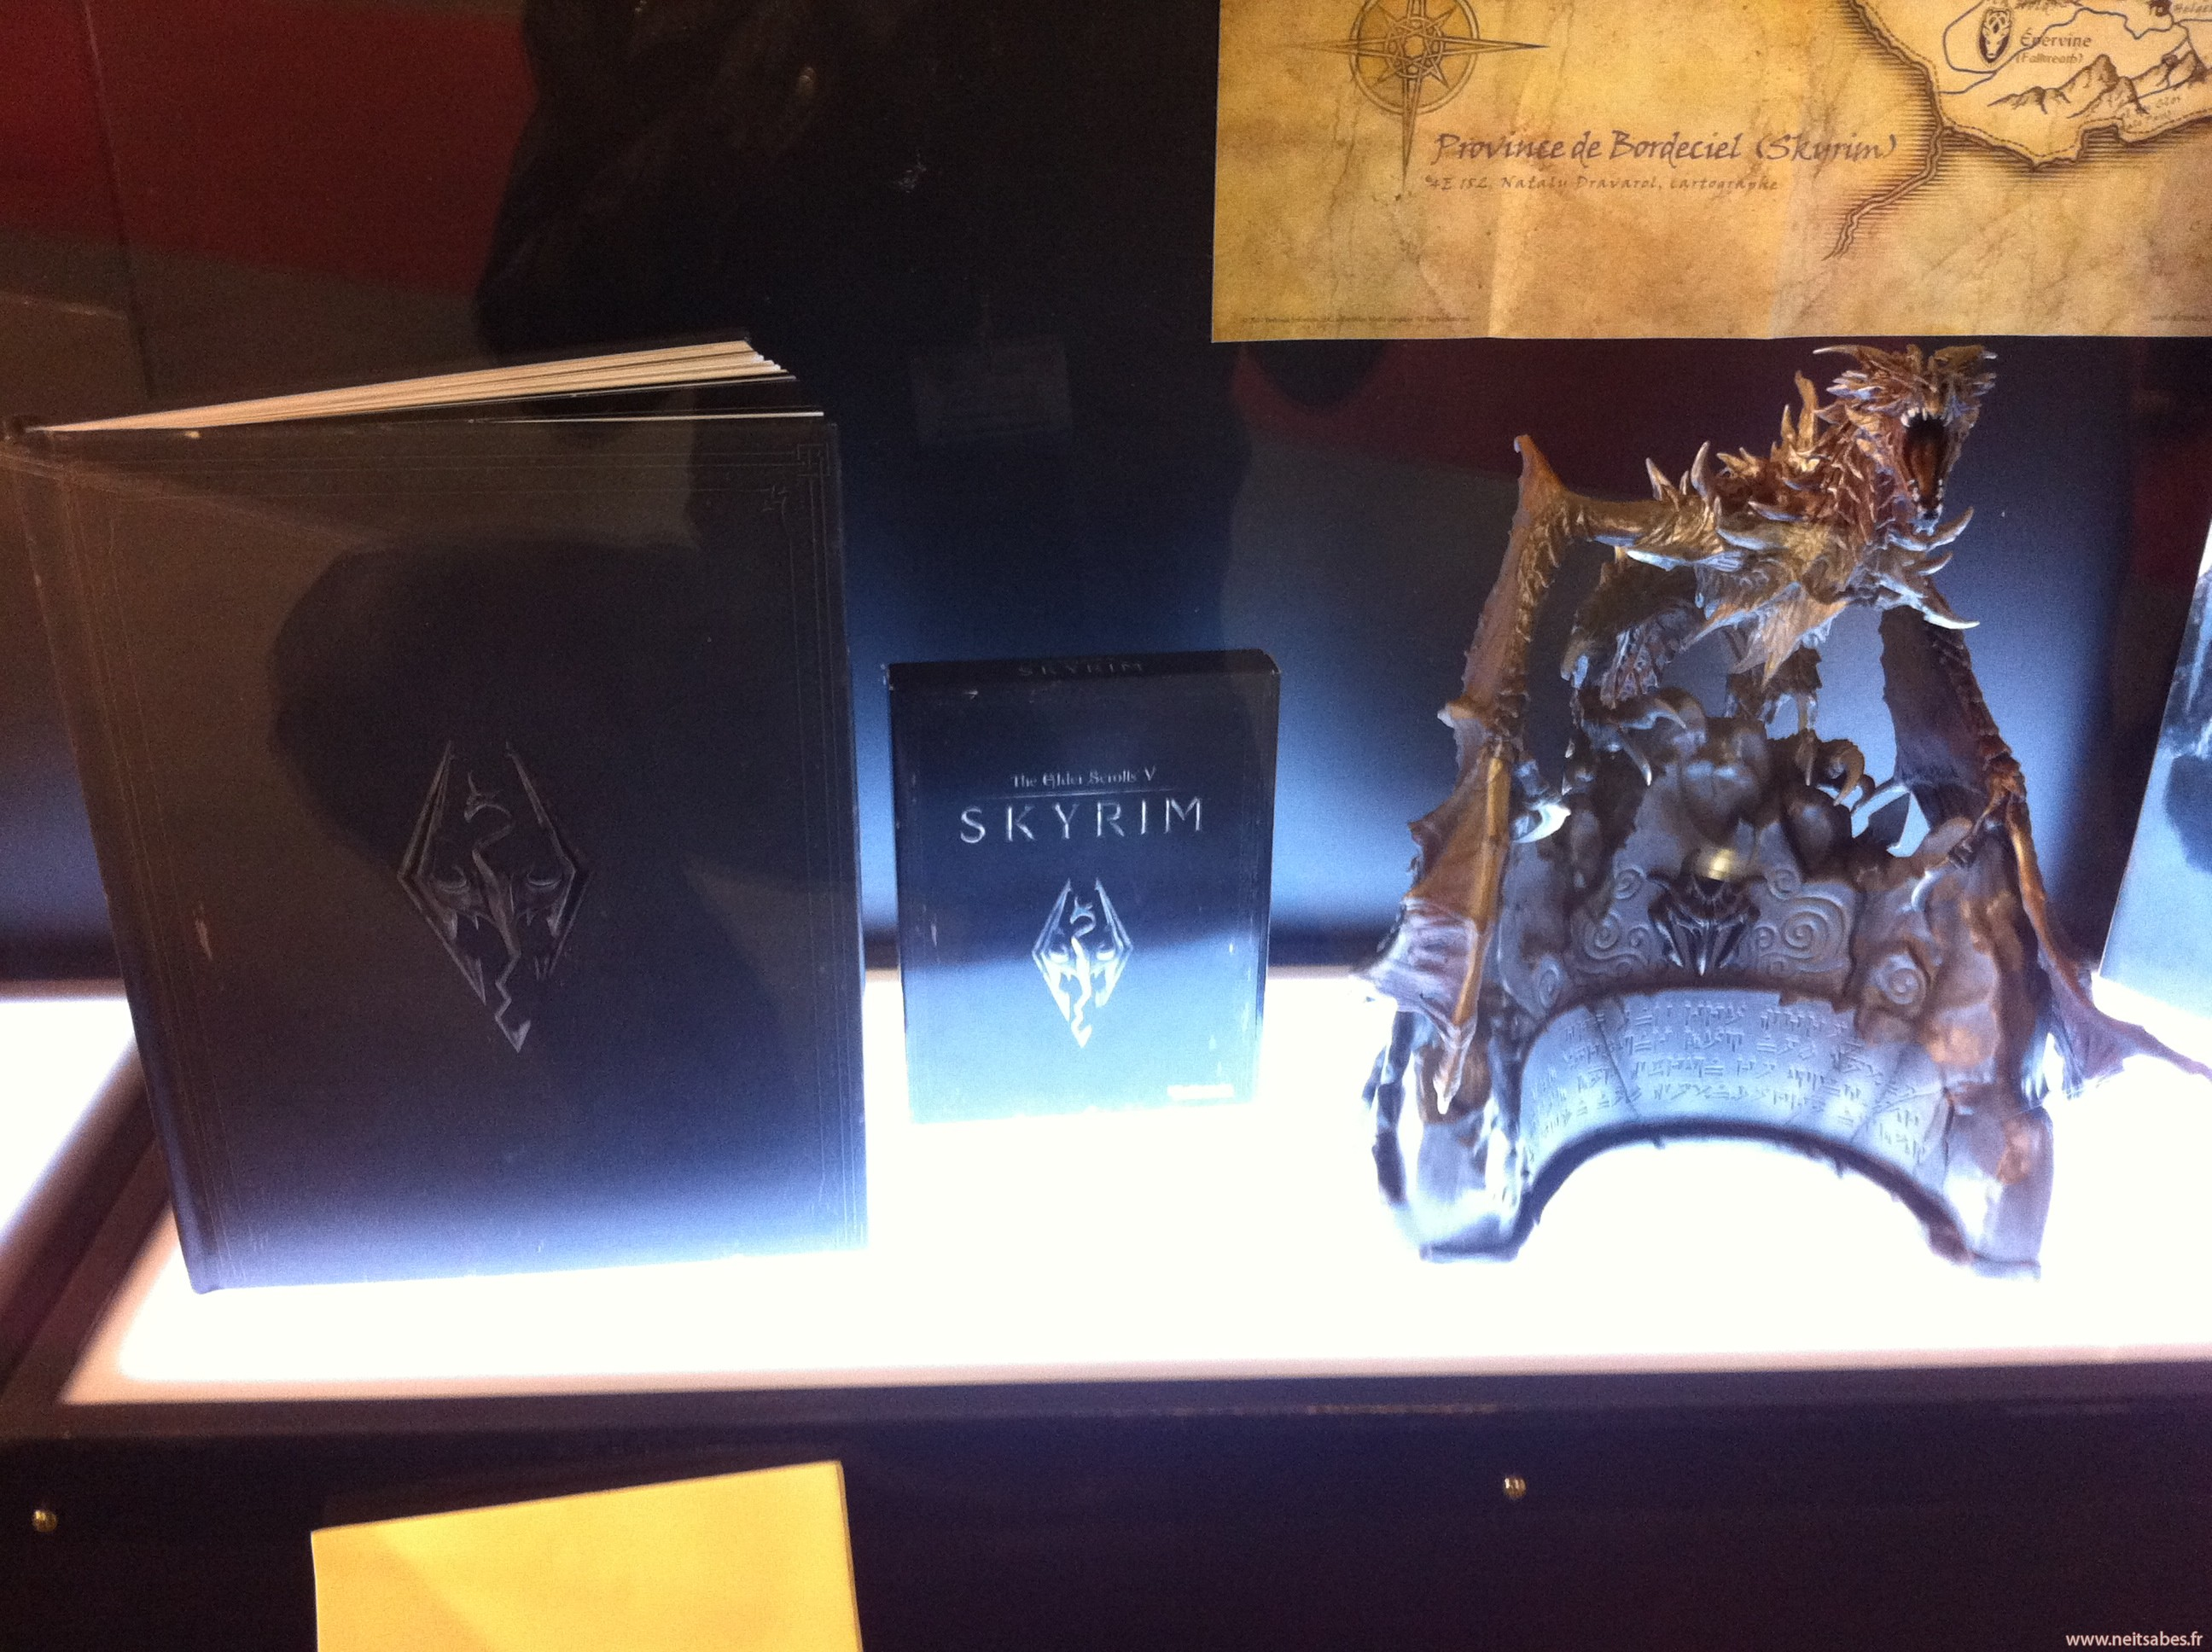 PGW : The Elder Scrolls V : Skyrim - Des images de la figurine du collector.